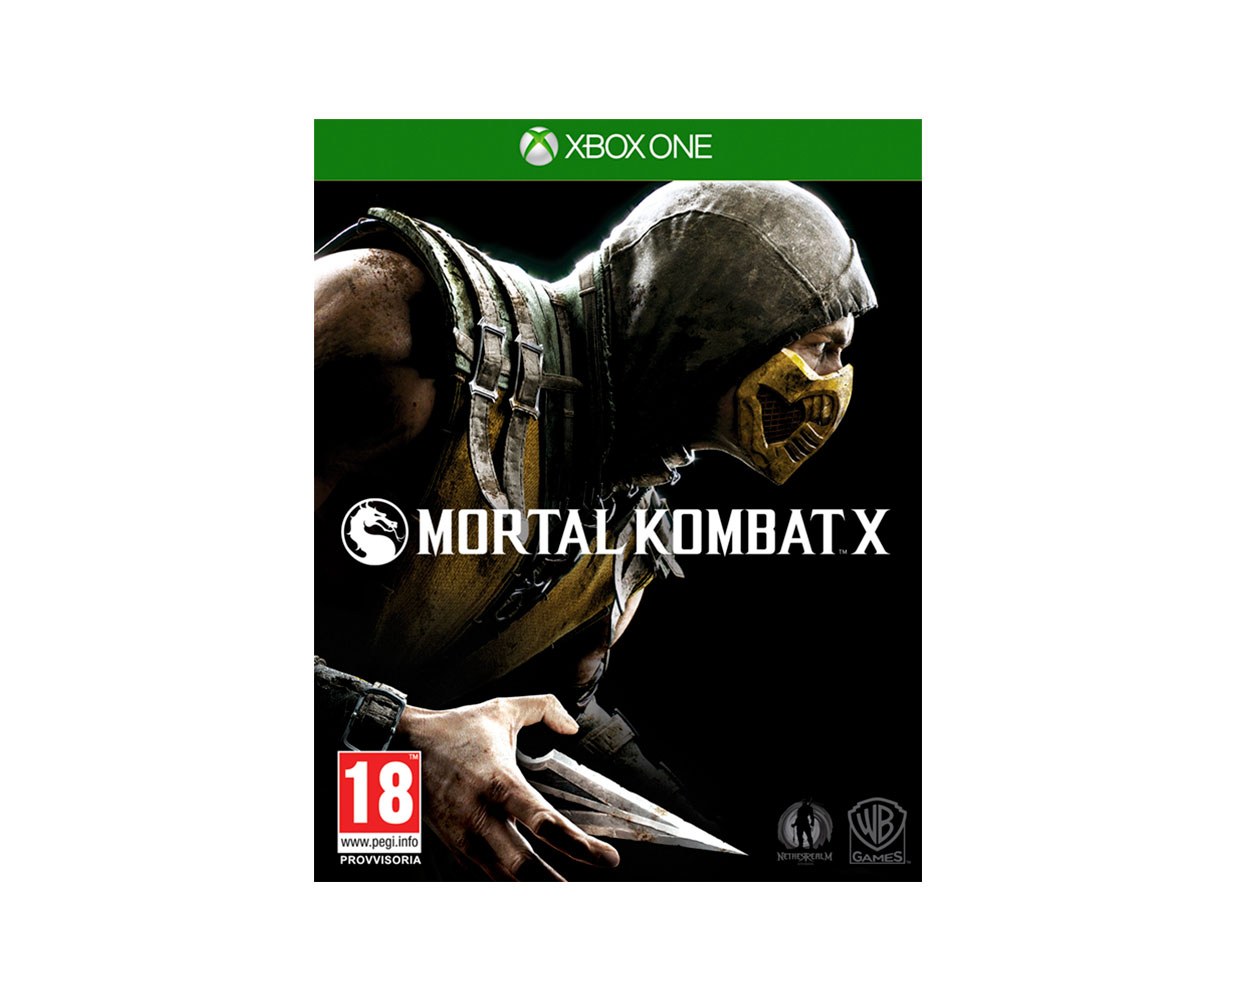 Видео игры: Mortal Kombat X XBOX ONE, фотография №1